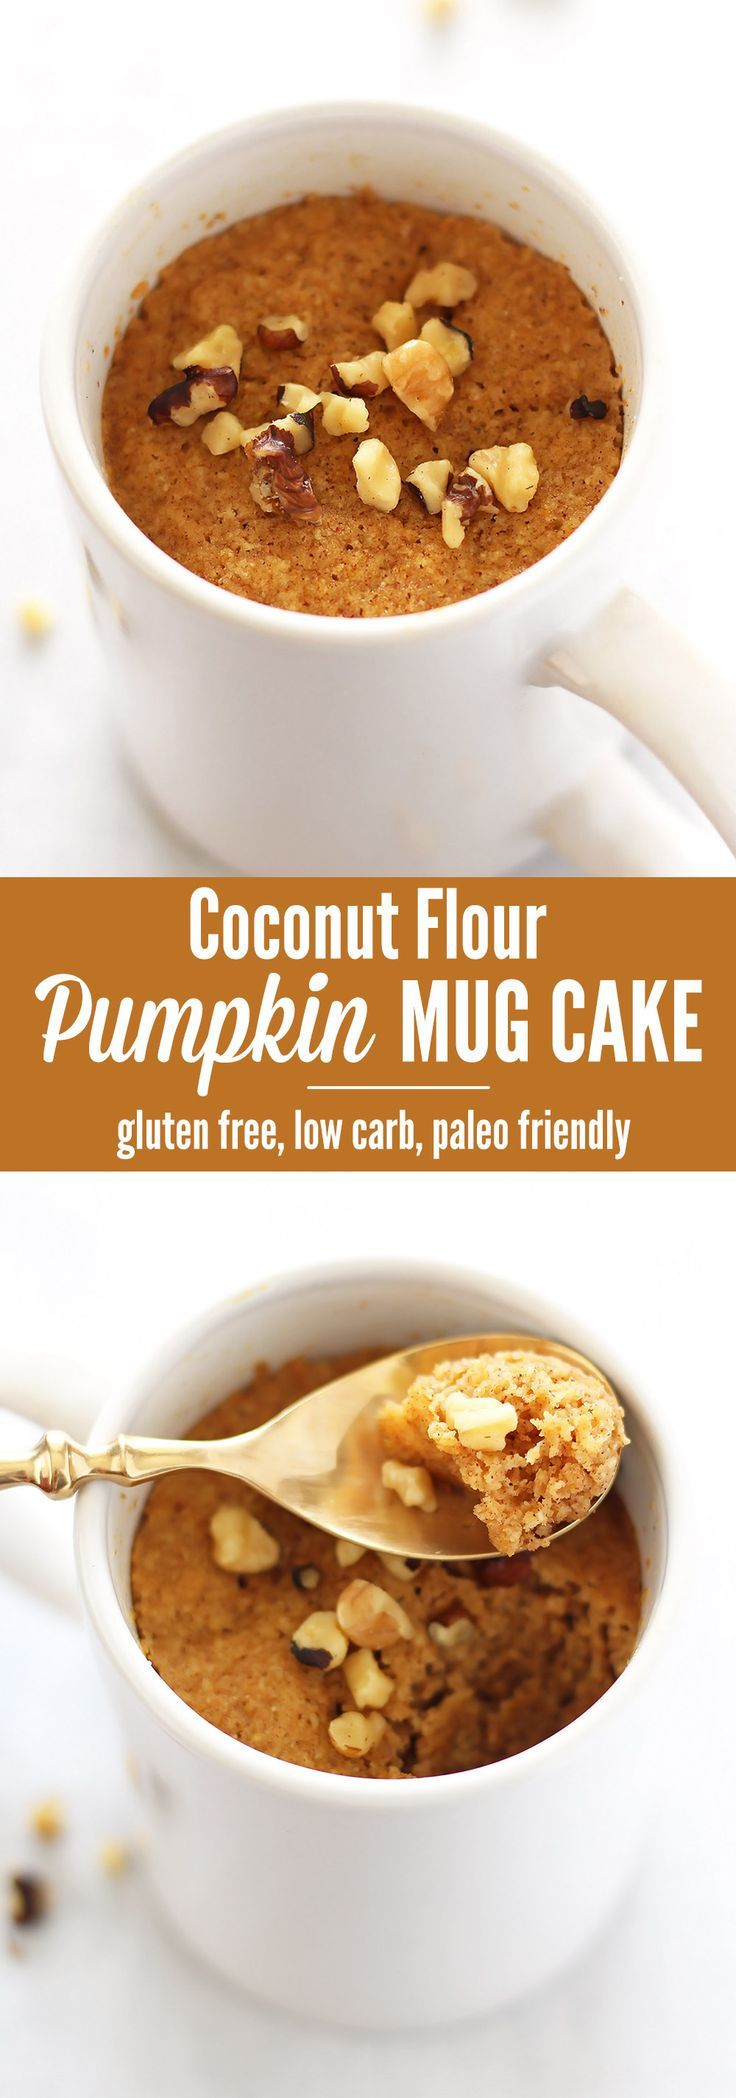 Coconut Flour Pumpkin Spice Mug Cake - this healthy and delicious dessert recipe takes only 5 minutes to make! PERFECT to quickly satisfy sweet cravings with REAL food ingredients. This recipe is gluten free, low carb and paleo friendly.